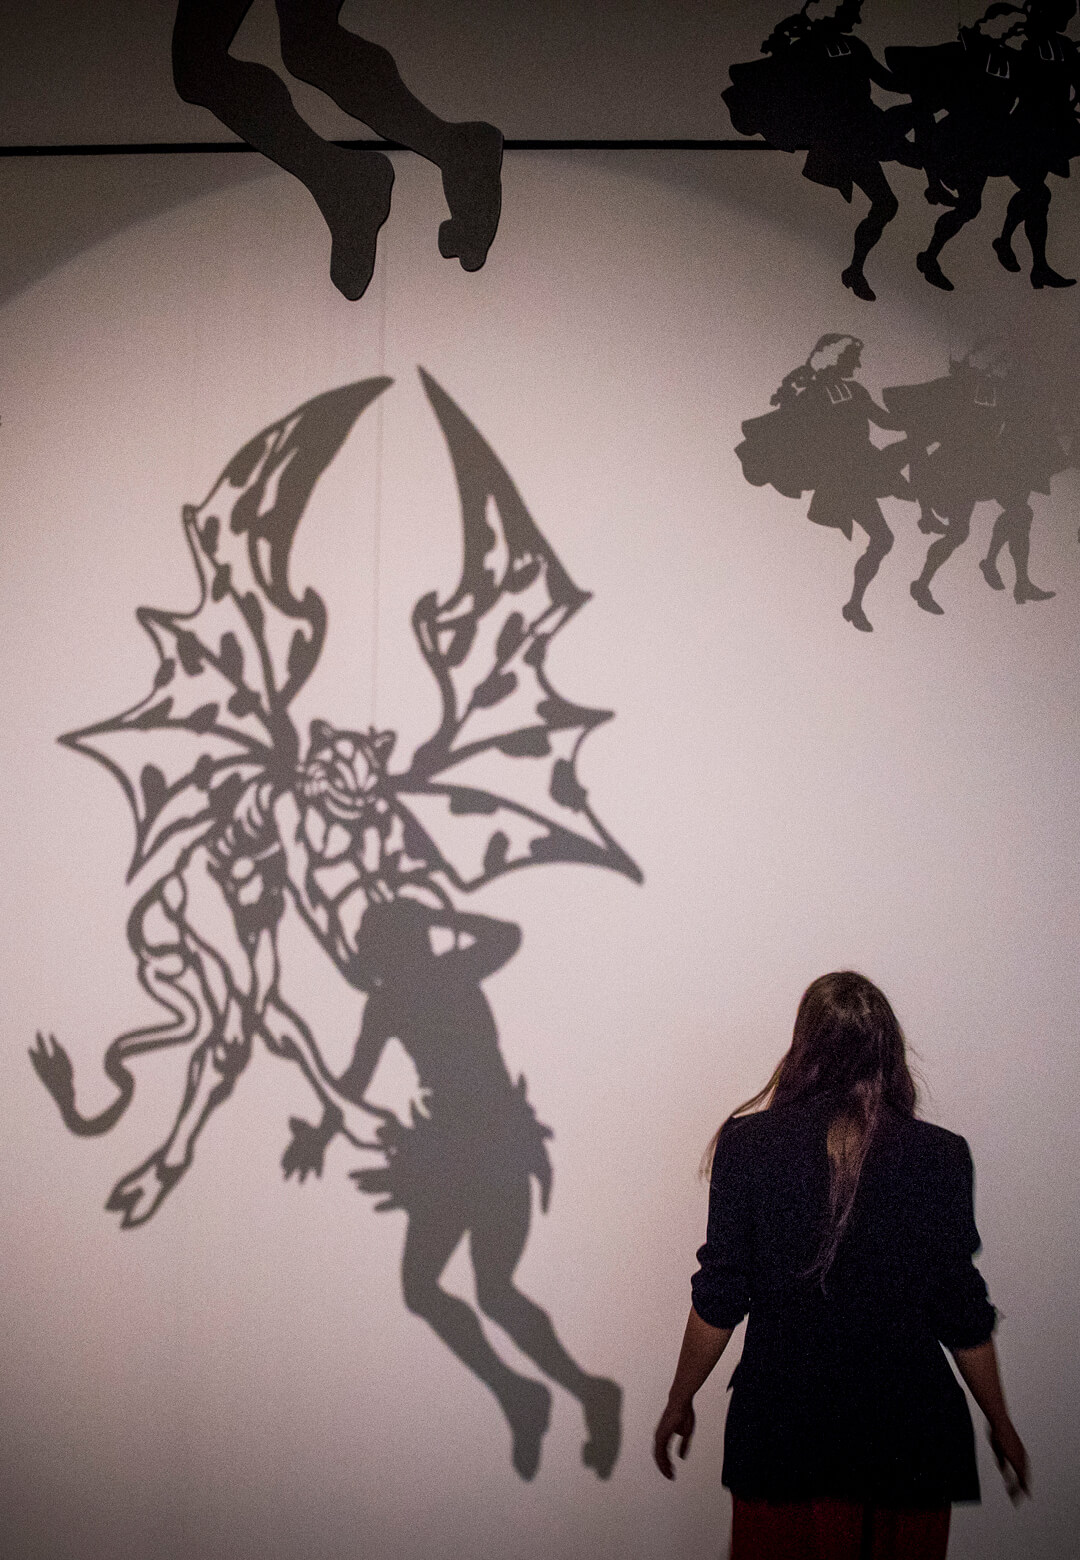 Recreated shadow puppets from the Parisian cabaret Le Chat Noir | Into the Night: Cabarets and Clubs in Modern Art | Barbican Centre | STIRworld